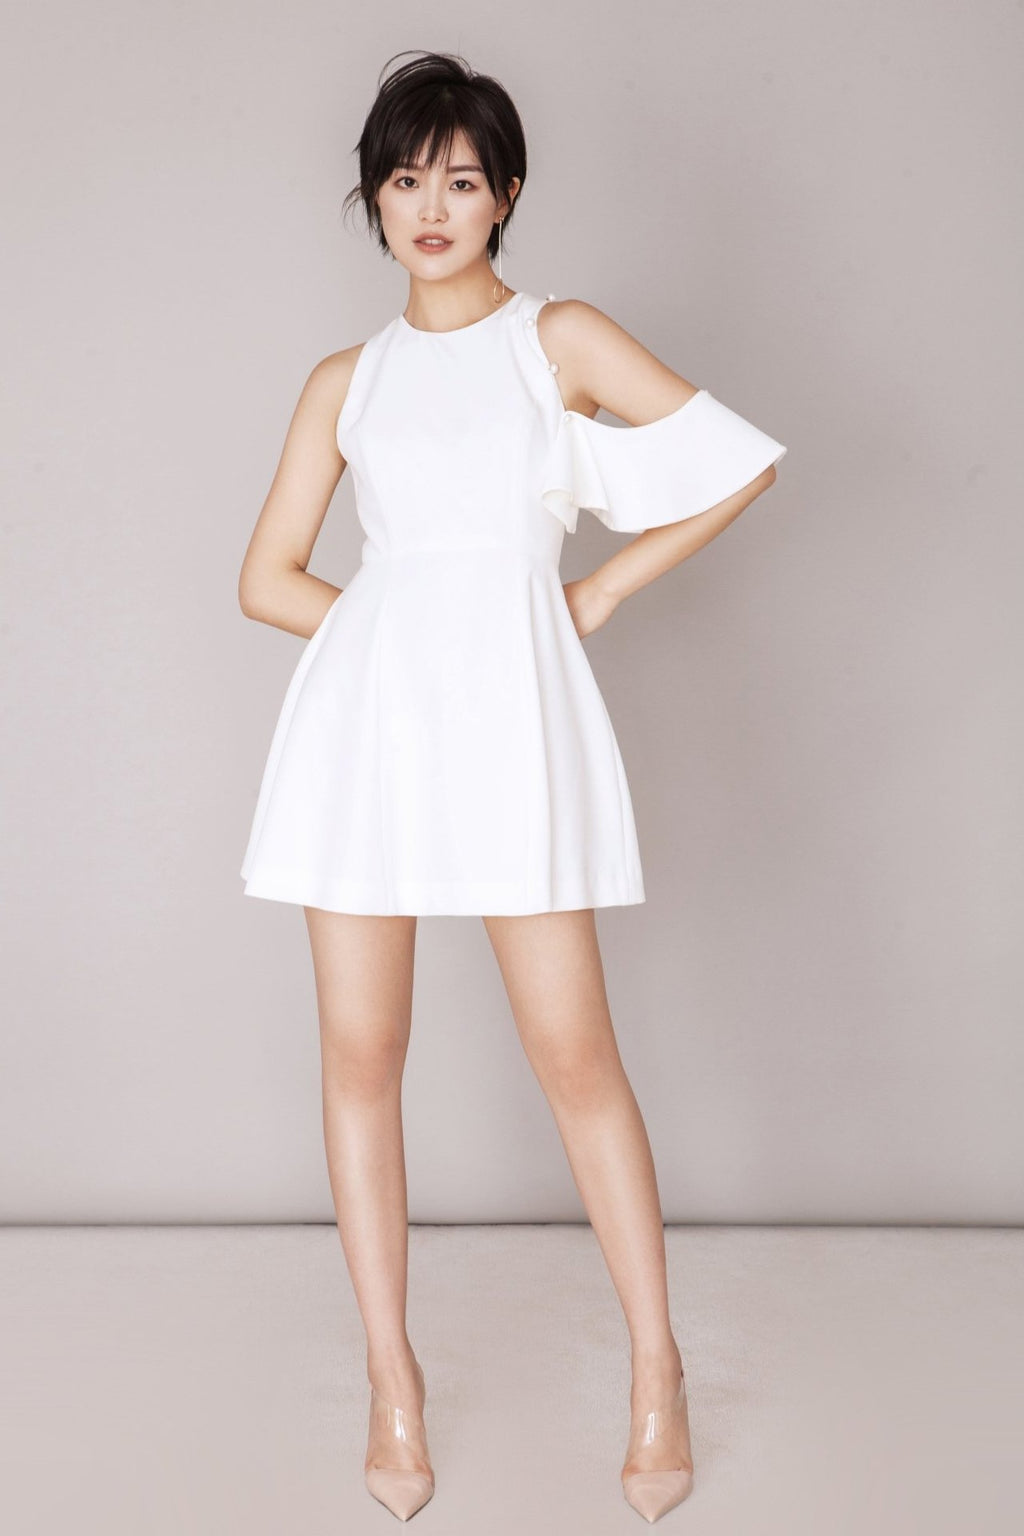 Fever Wang removable-sleeve dress